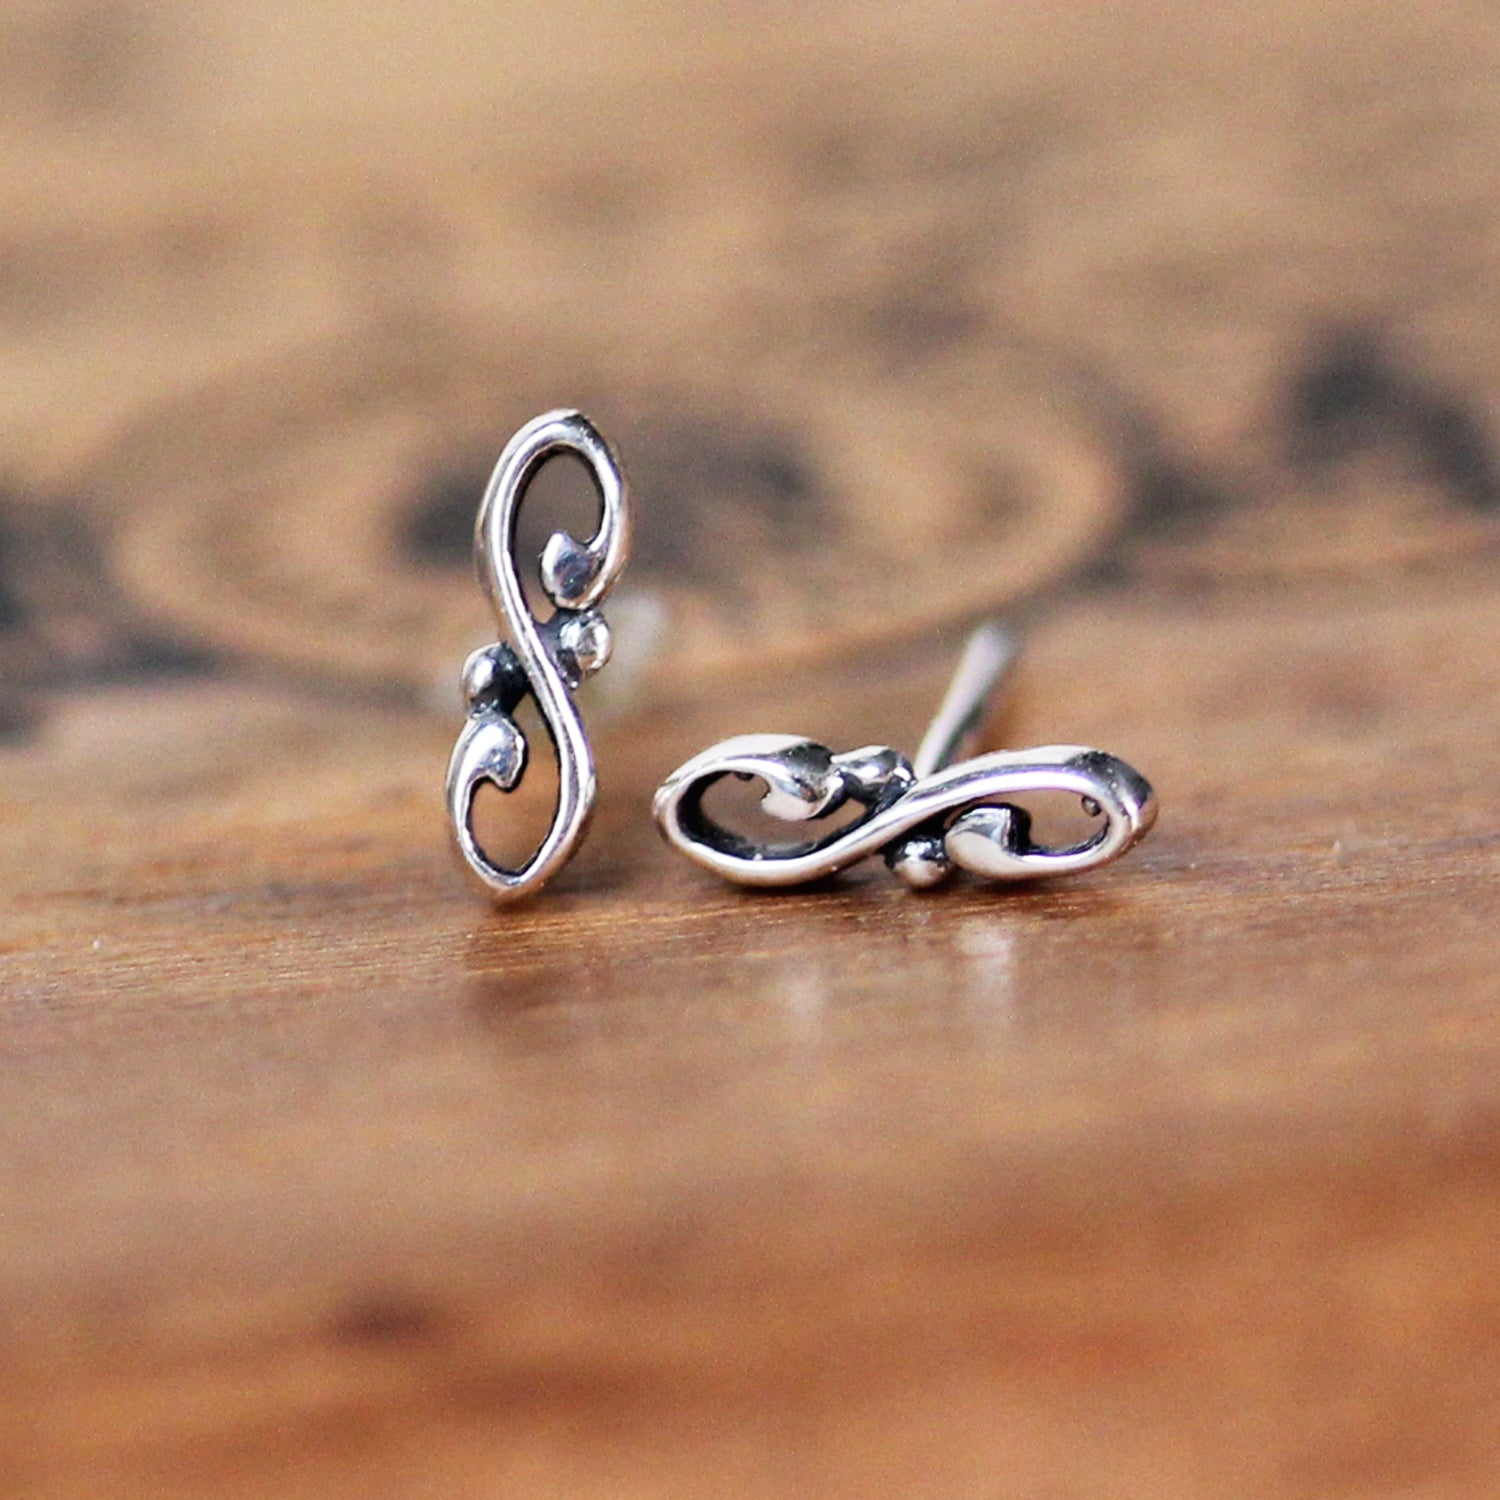 Dainty Infinity Stud Earrings - Wrought